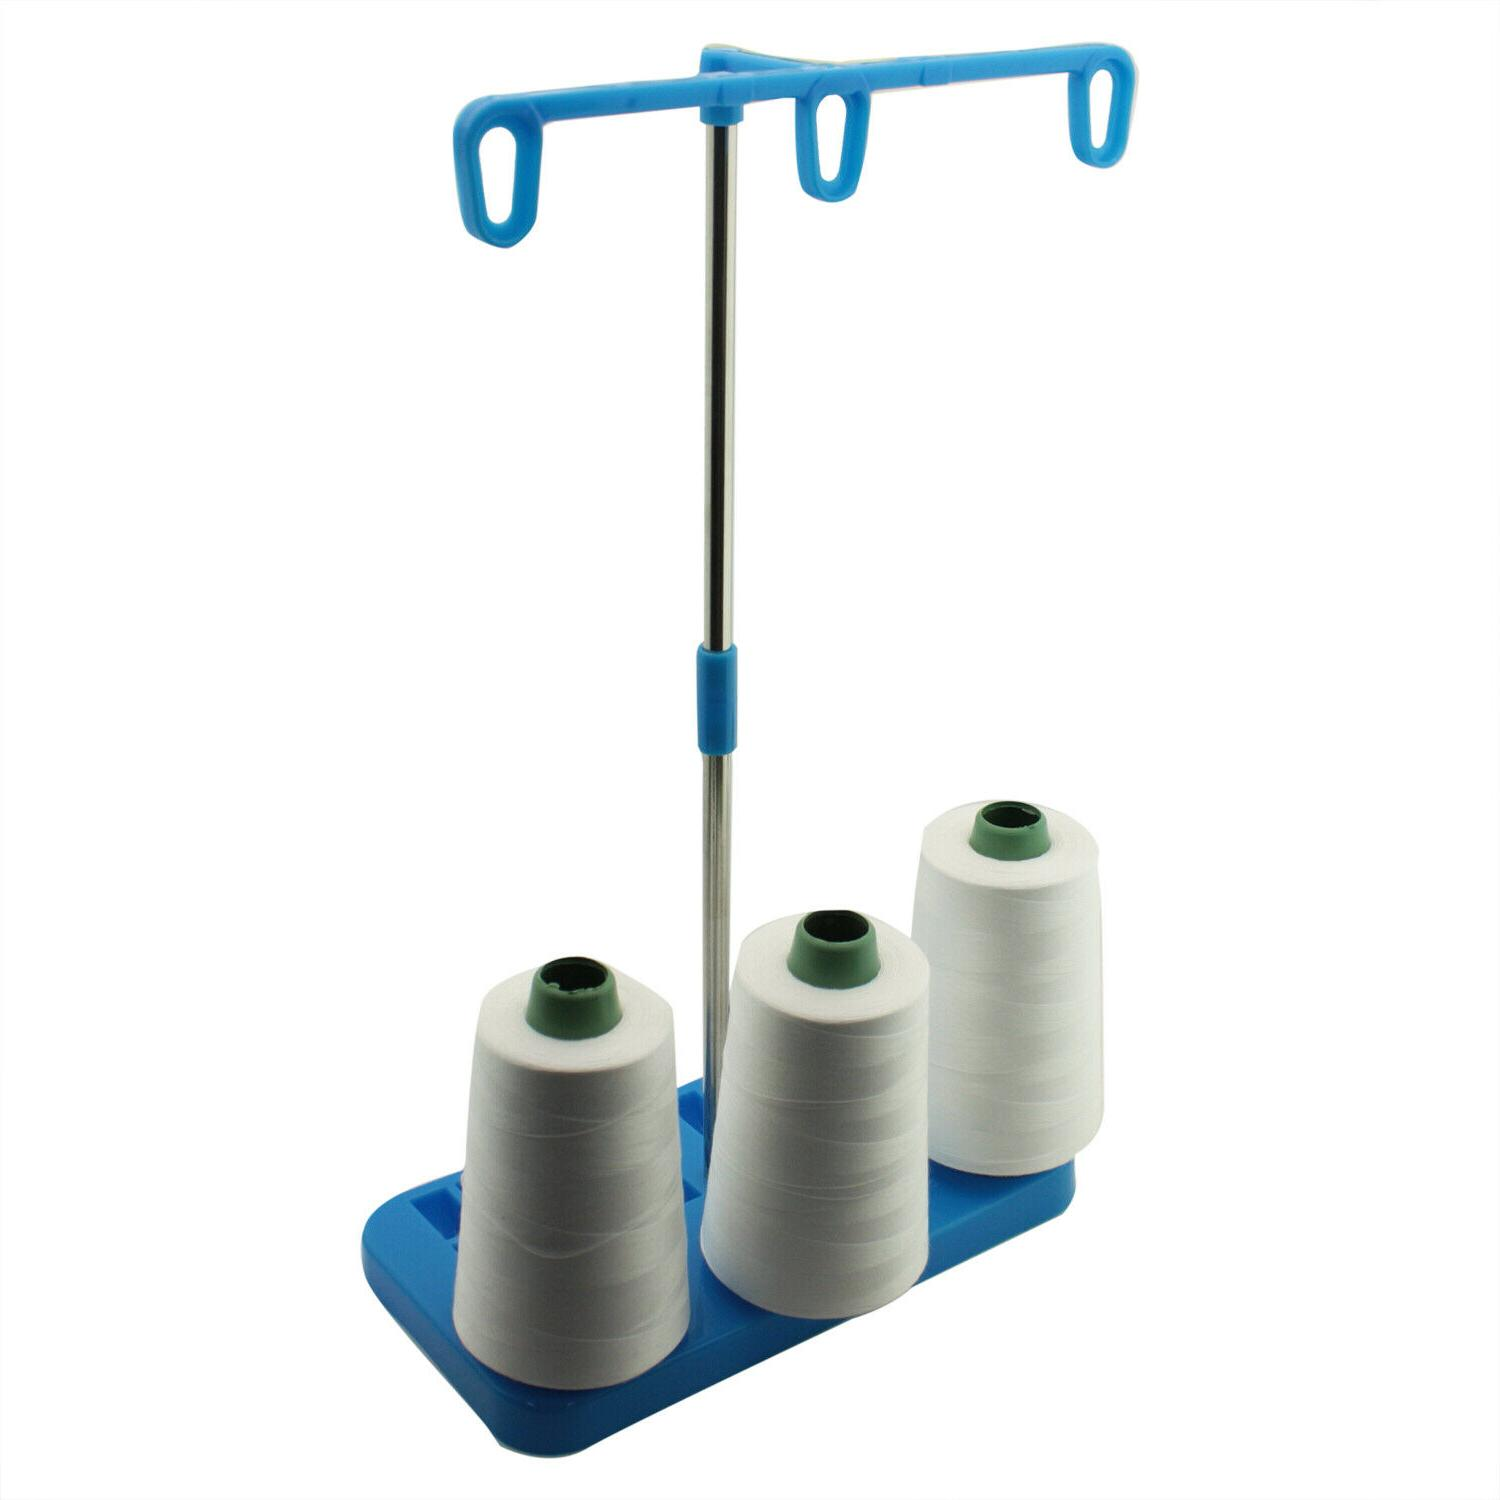 3 Spool Stand for Overlock Sergers, & Embroidery Machines